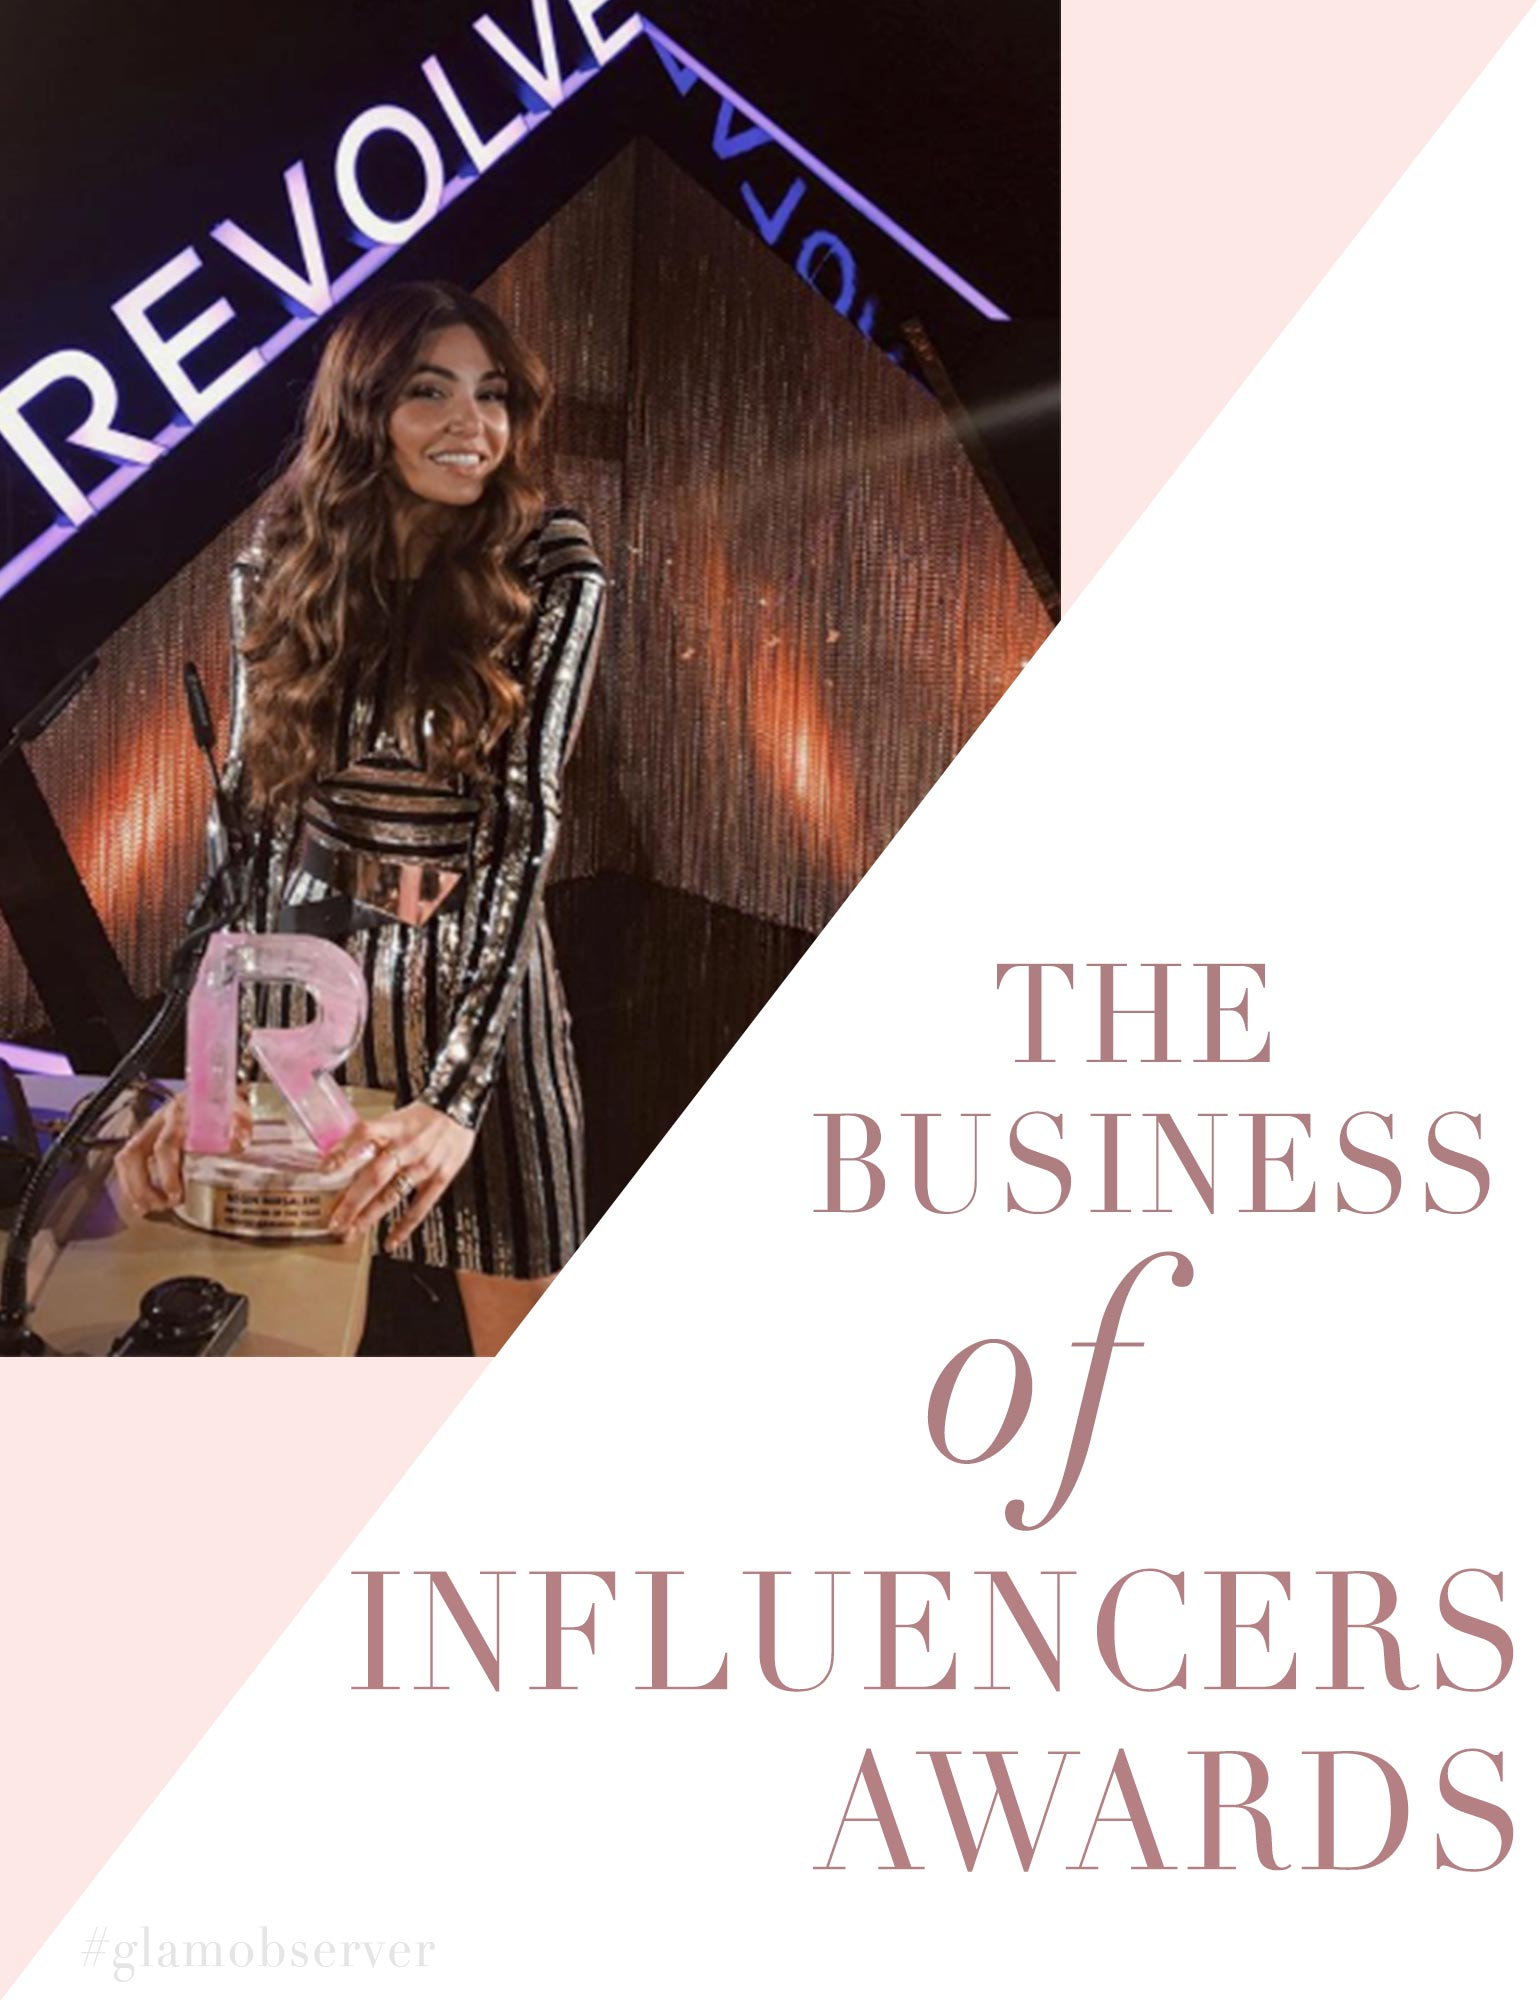 The Business of influencers awards